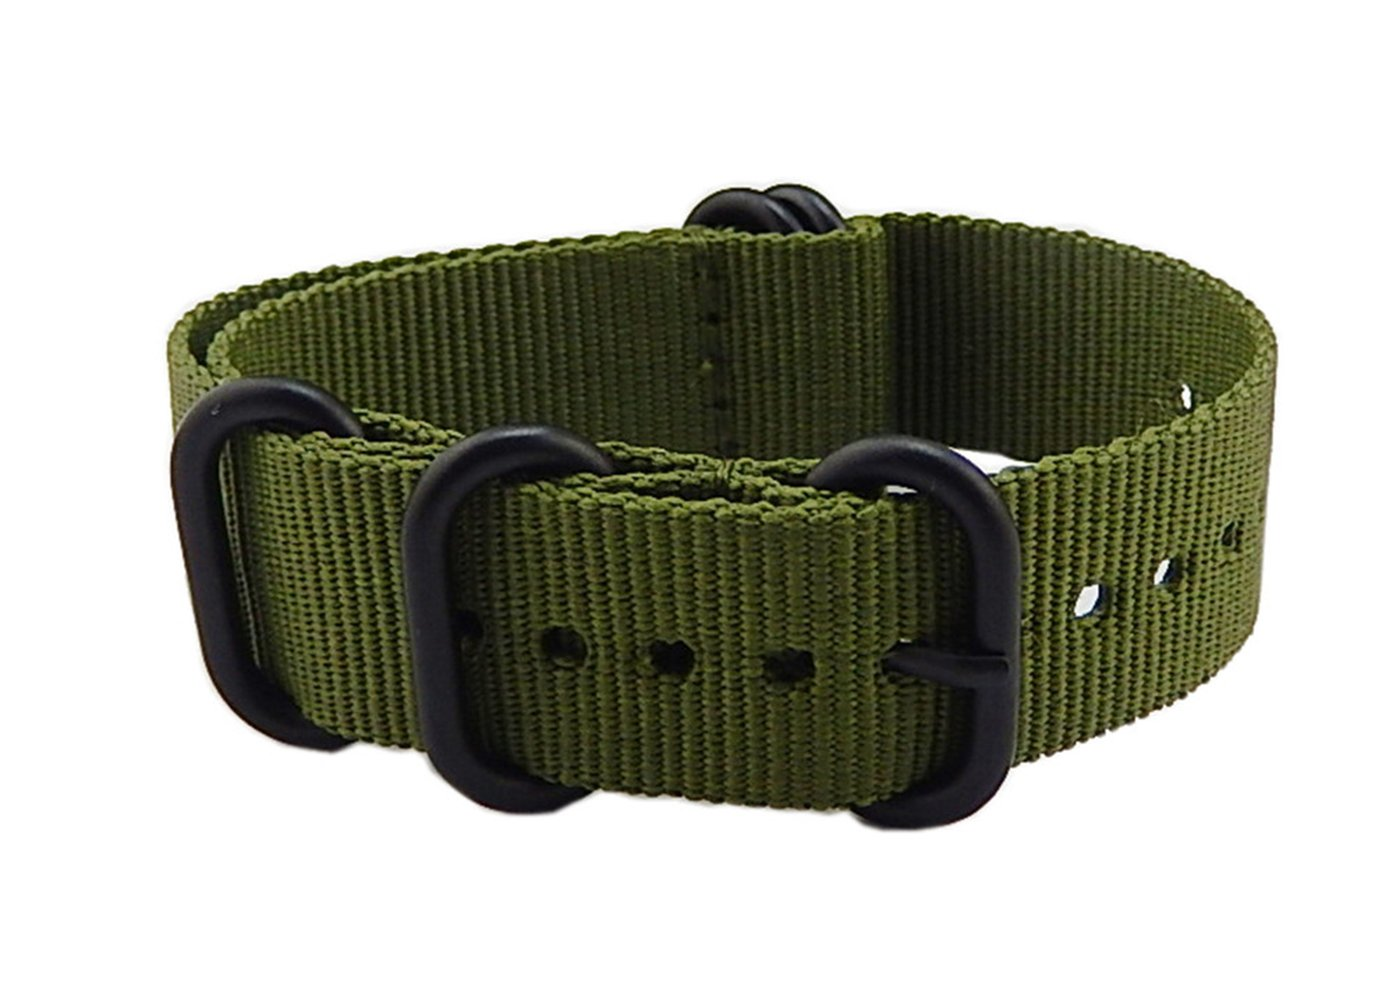 16mm Army Green High-end Nato style Ballistic Nylon Watch Band Strap Replacement for Women Braided